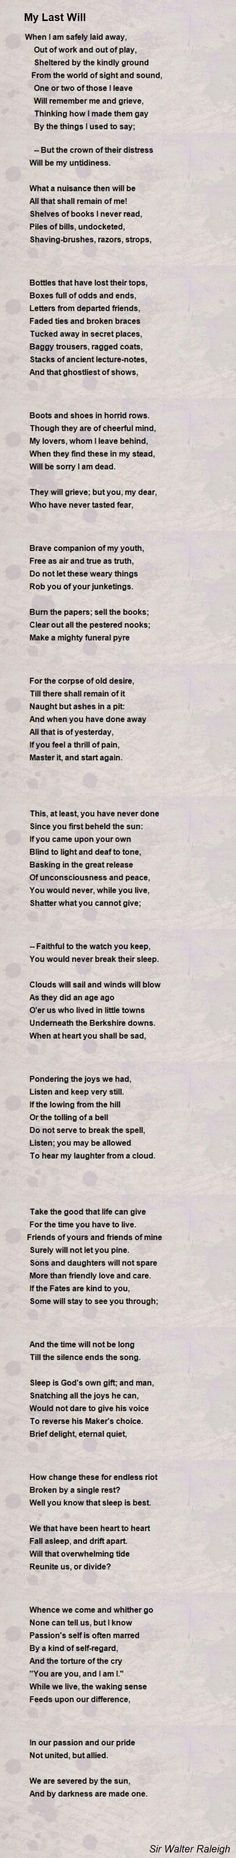 """Forgot how much I loved this poem... """"My Last Will""""  Fav Quote: """"We are severed by the sun, And by darkness are made one.""""  By, Sir Walter Raleigh"""